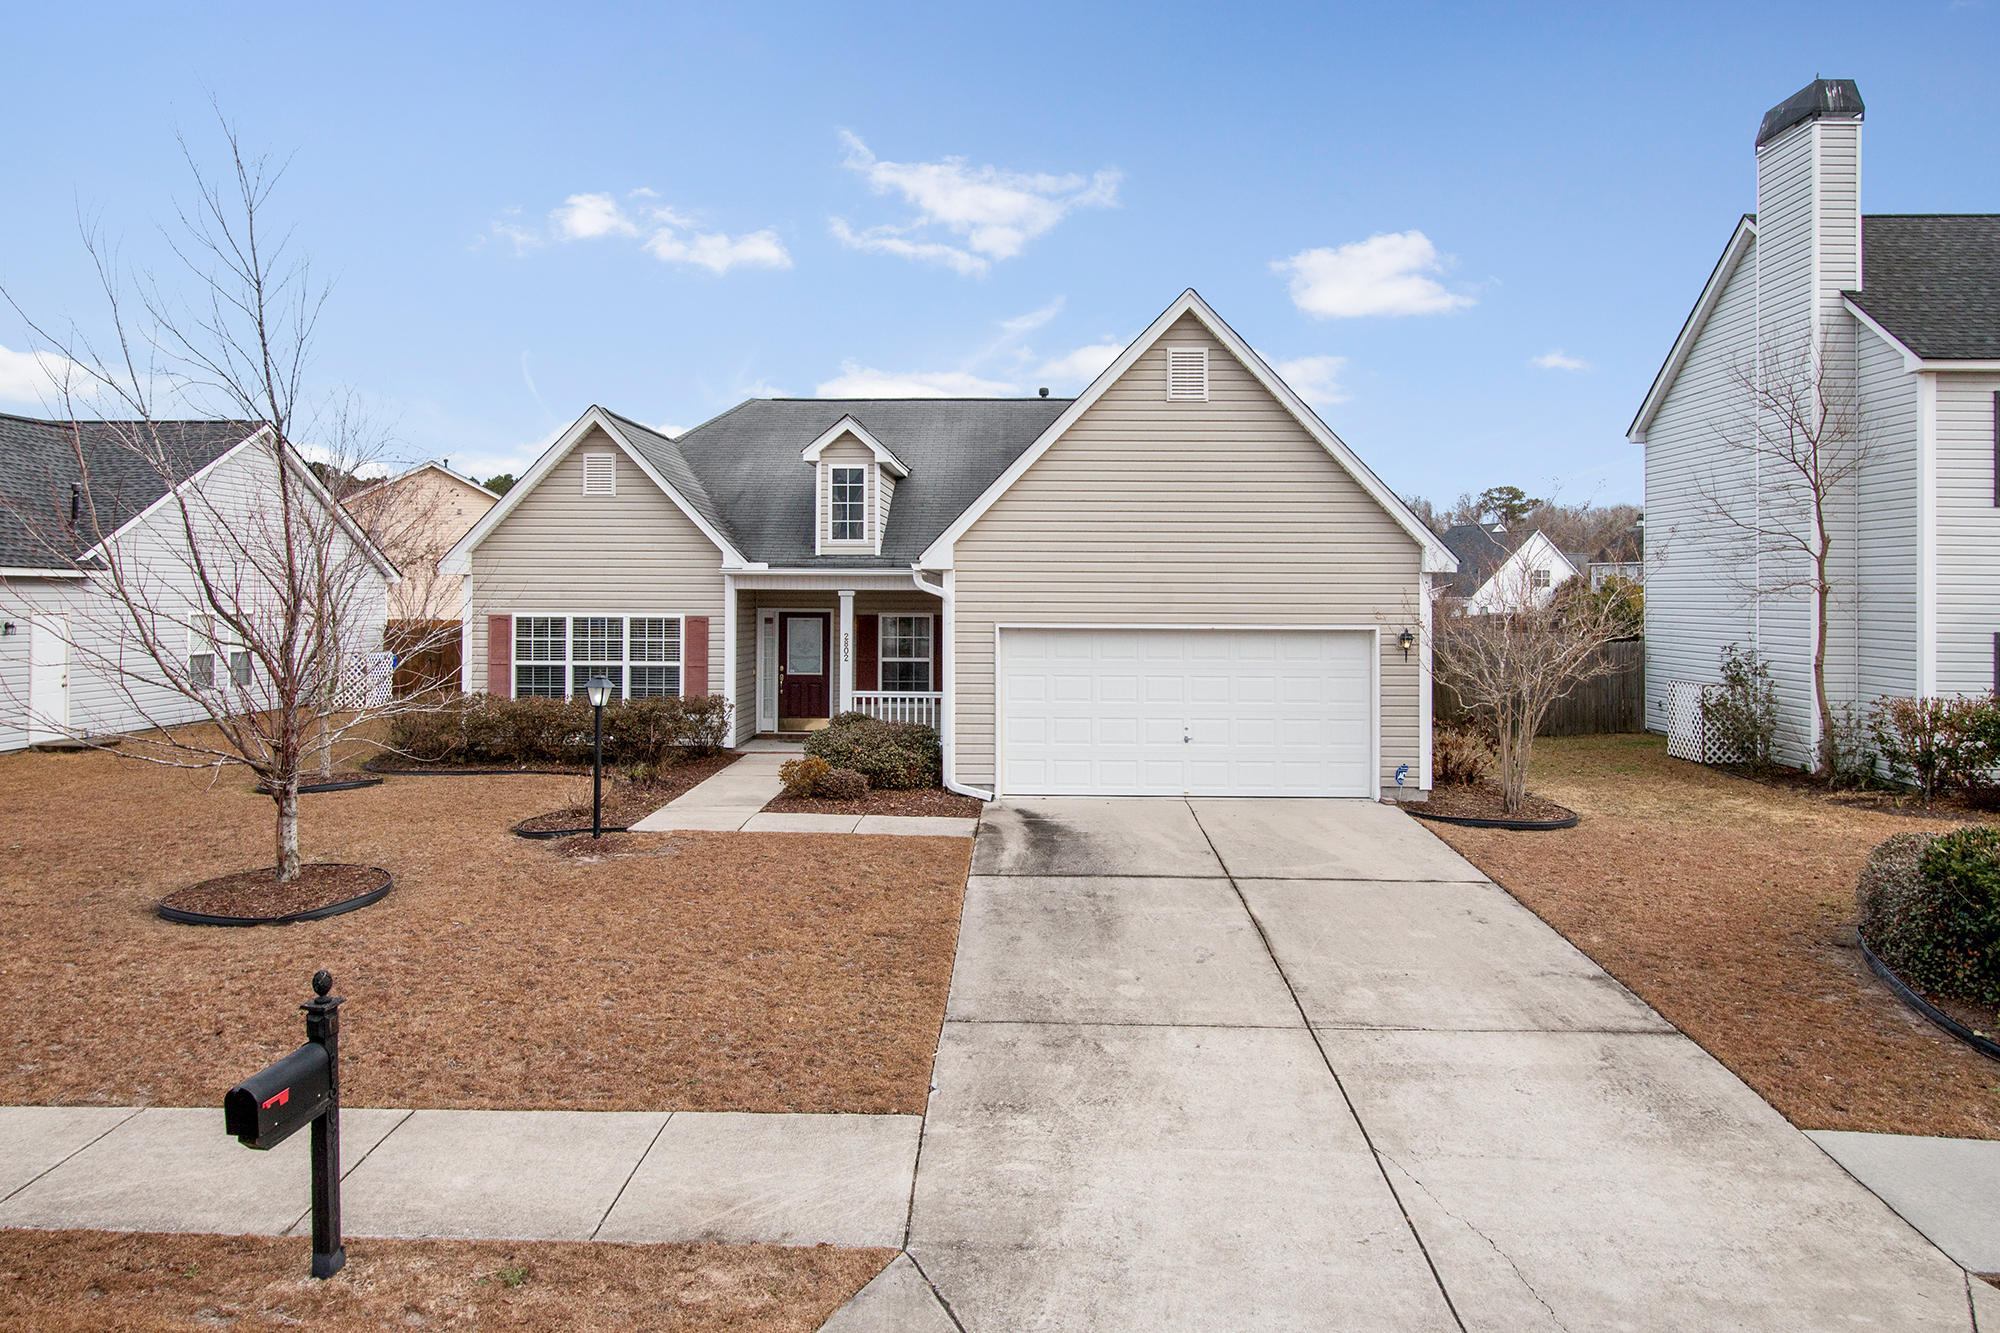 Home for sale 2802 Summertrees Boulevard, Summertrees, Johns Island, SC